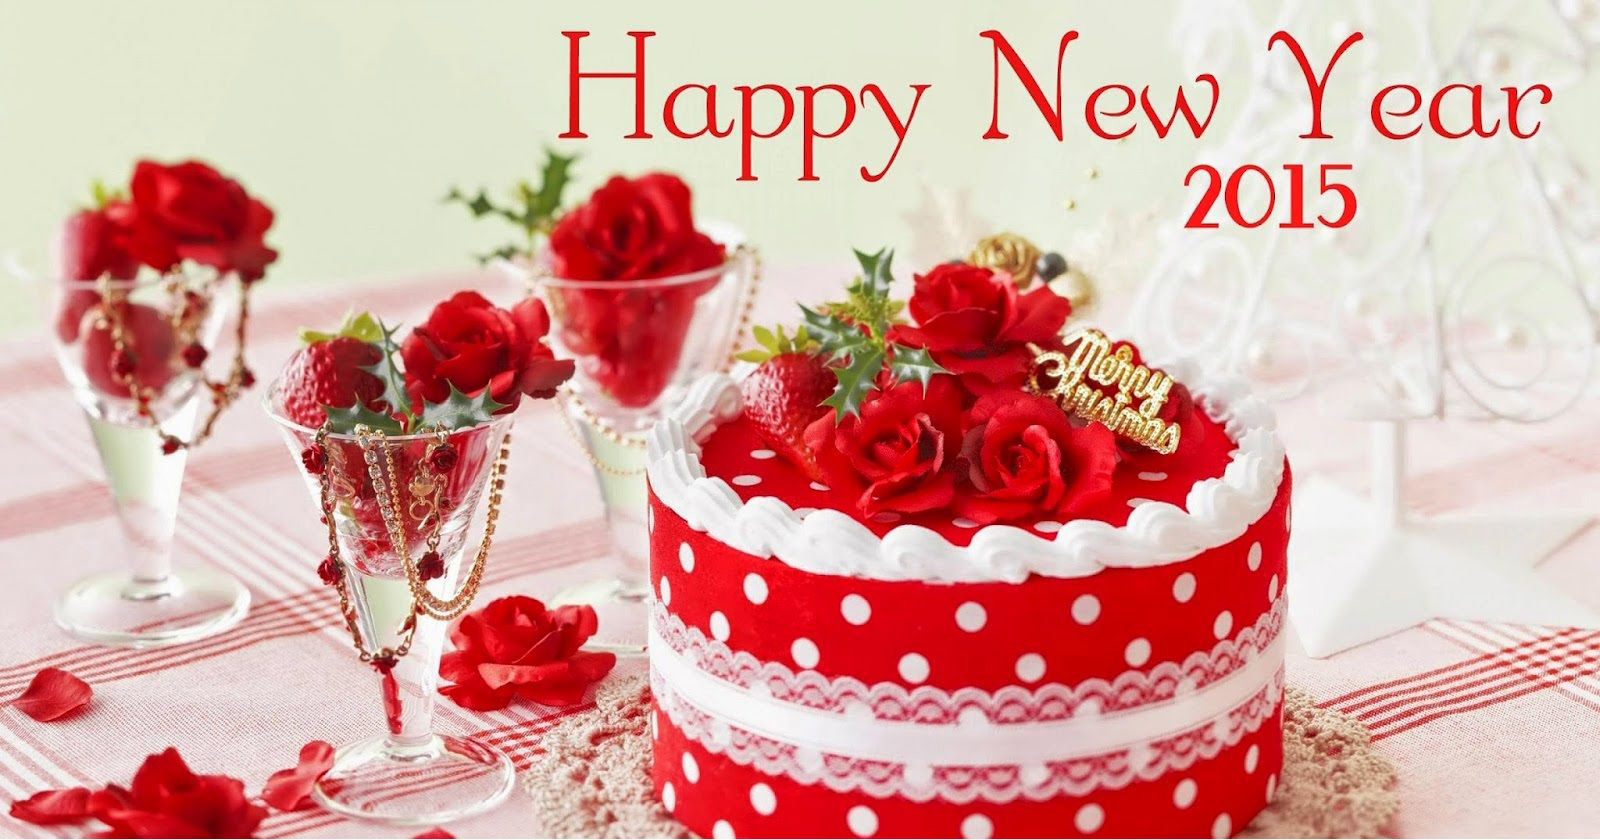 Happy New Year 2015 Cake Images